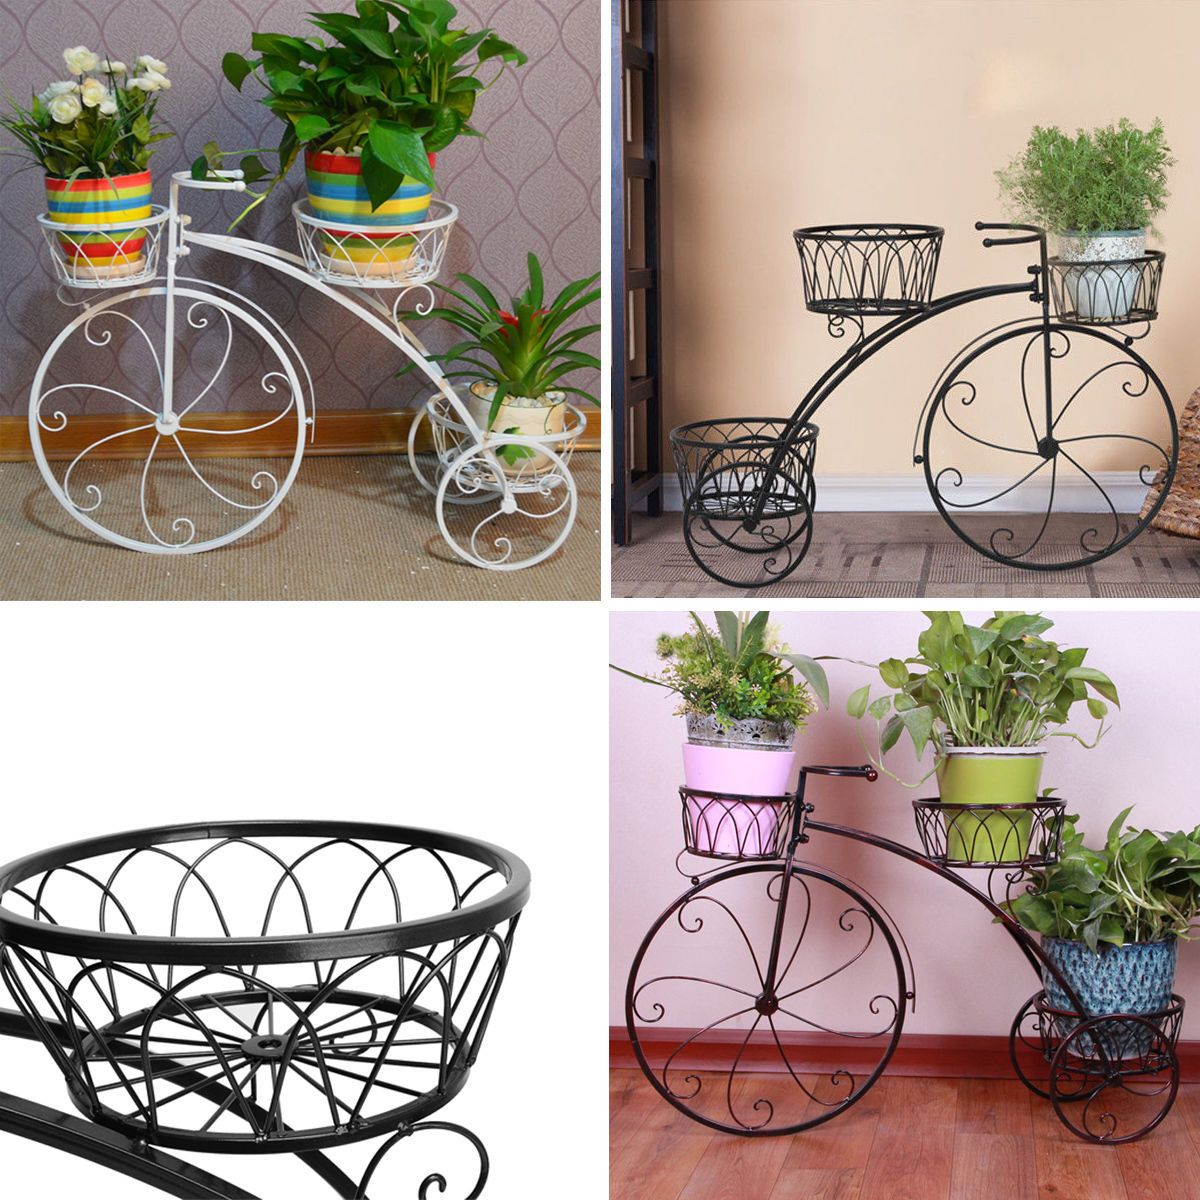 Plant Stands On Wheels 3 Color 3 Tier Metal Bicycle Pot Plant Stand Decor High